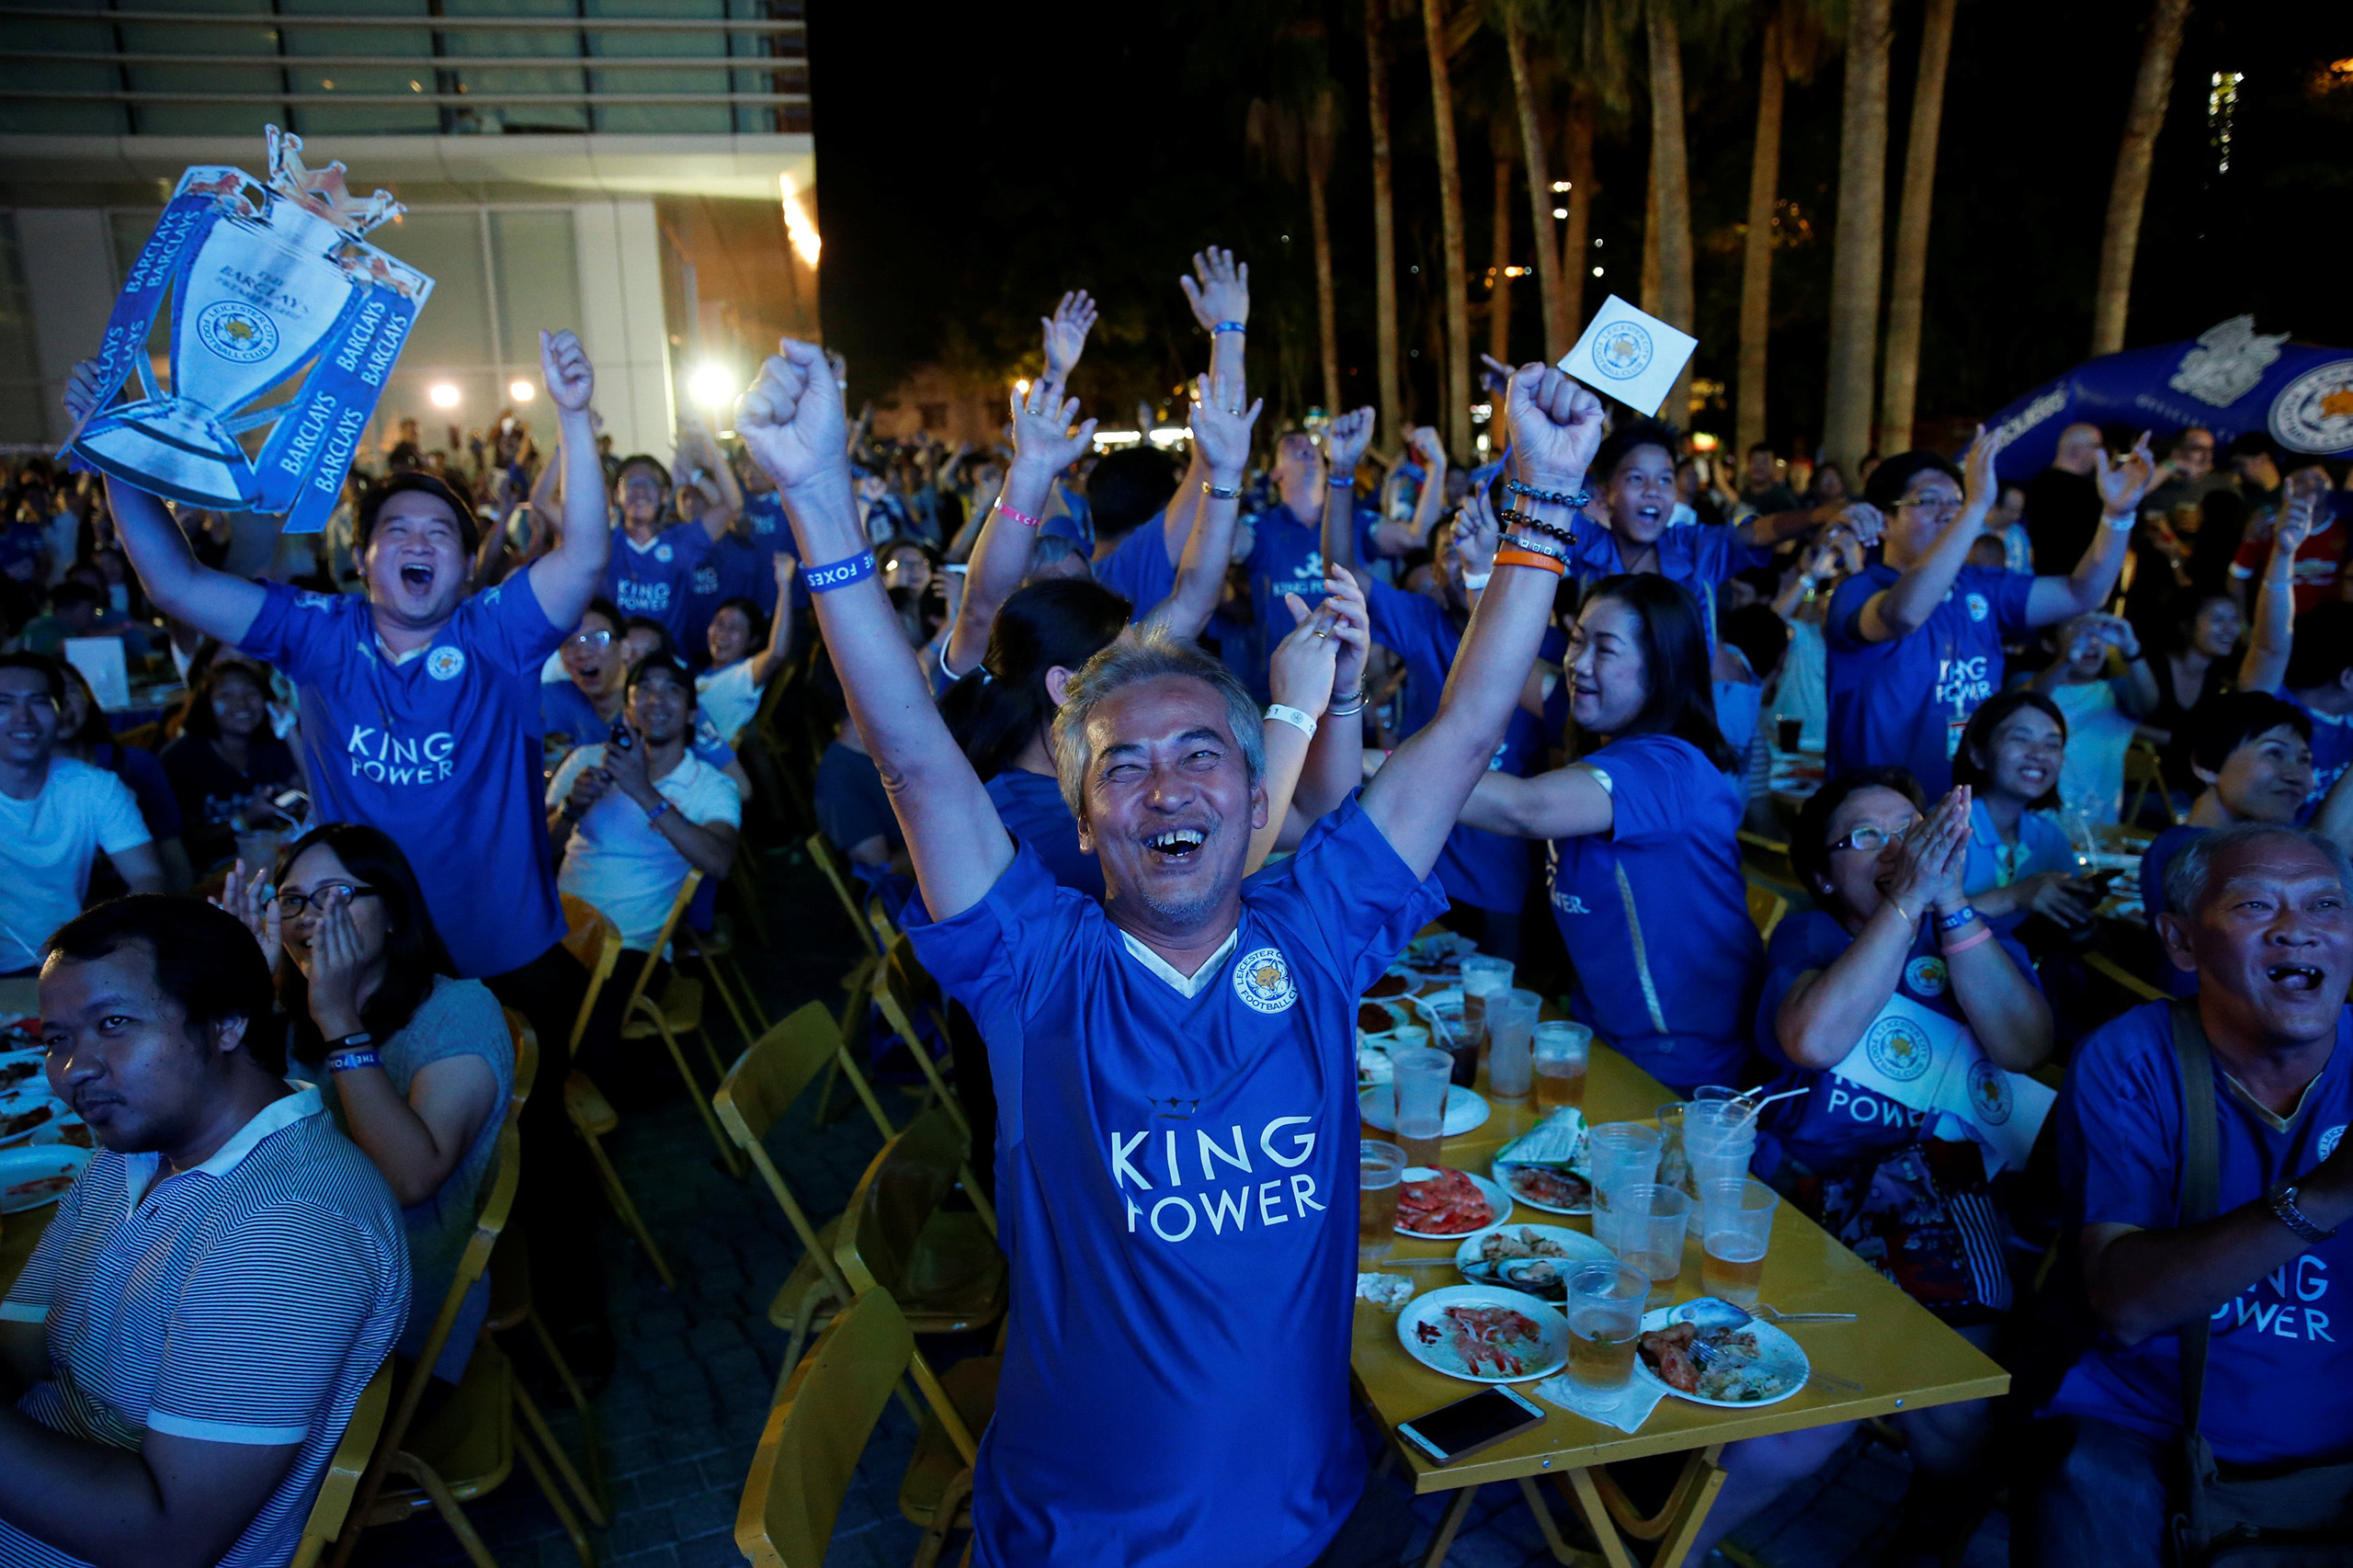 Leicester City fans celebrate after their team scores against Manchester United while watching the game on a big screen, in Bangkok, Thailand, May 1, 2016.